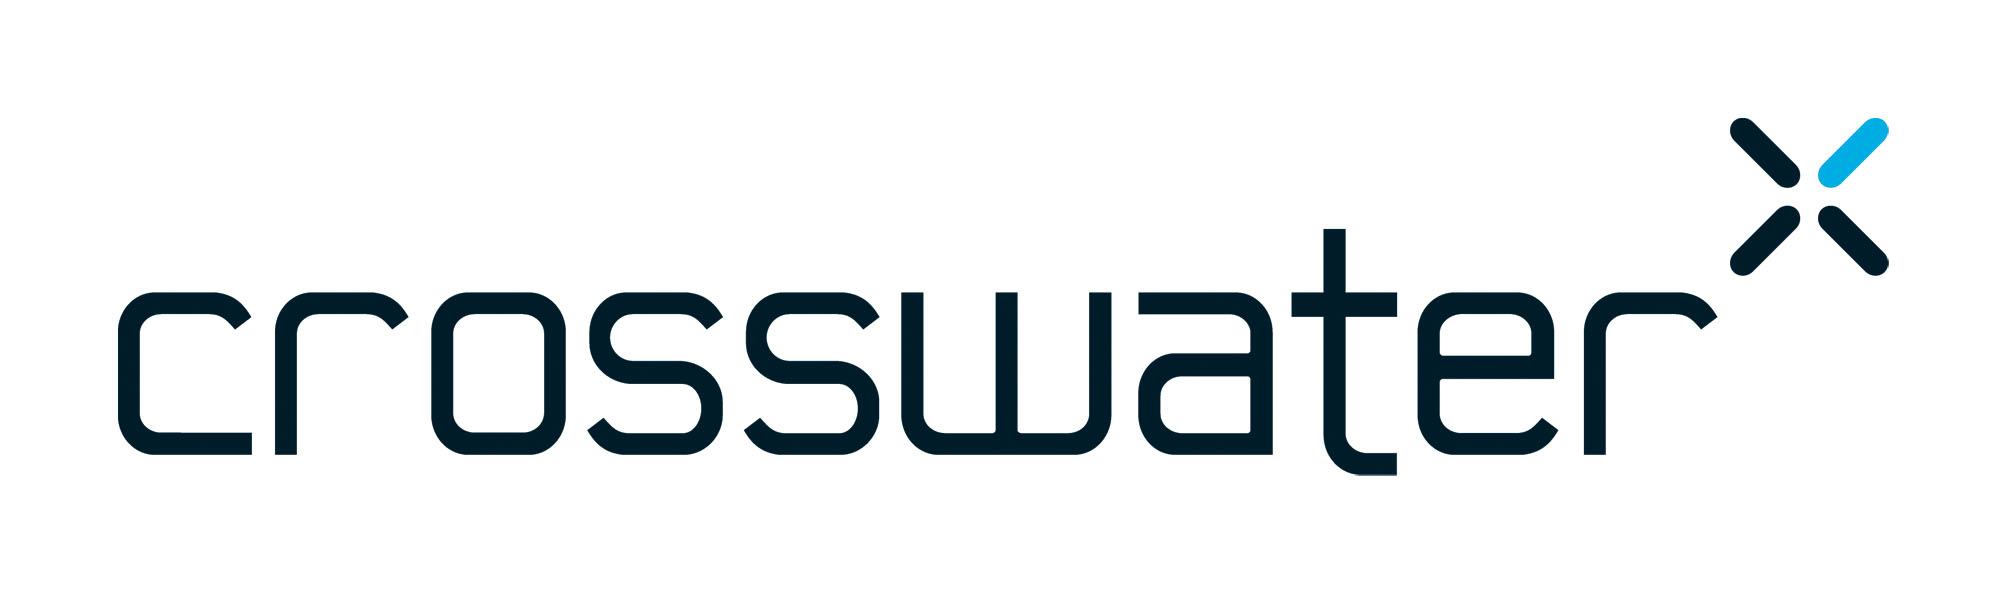 CrosswaterLogo